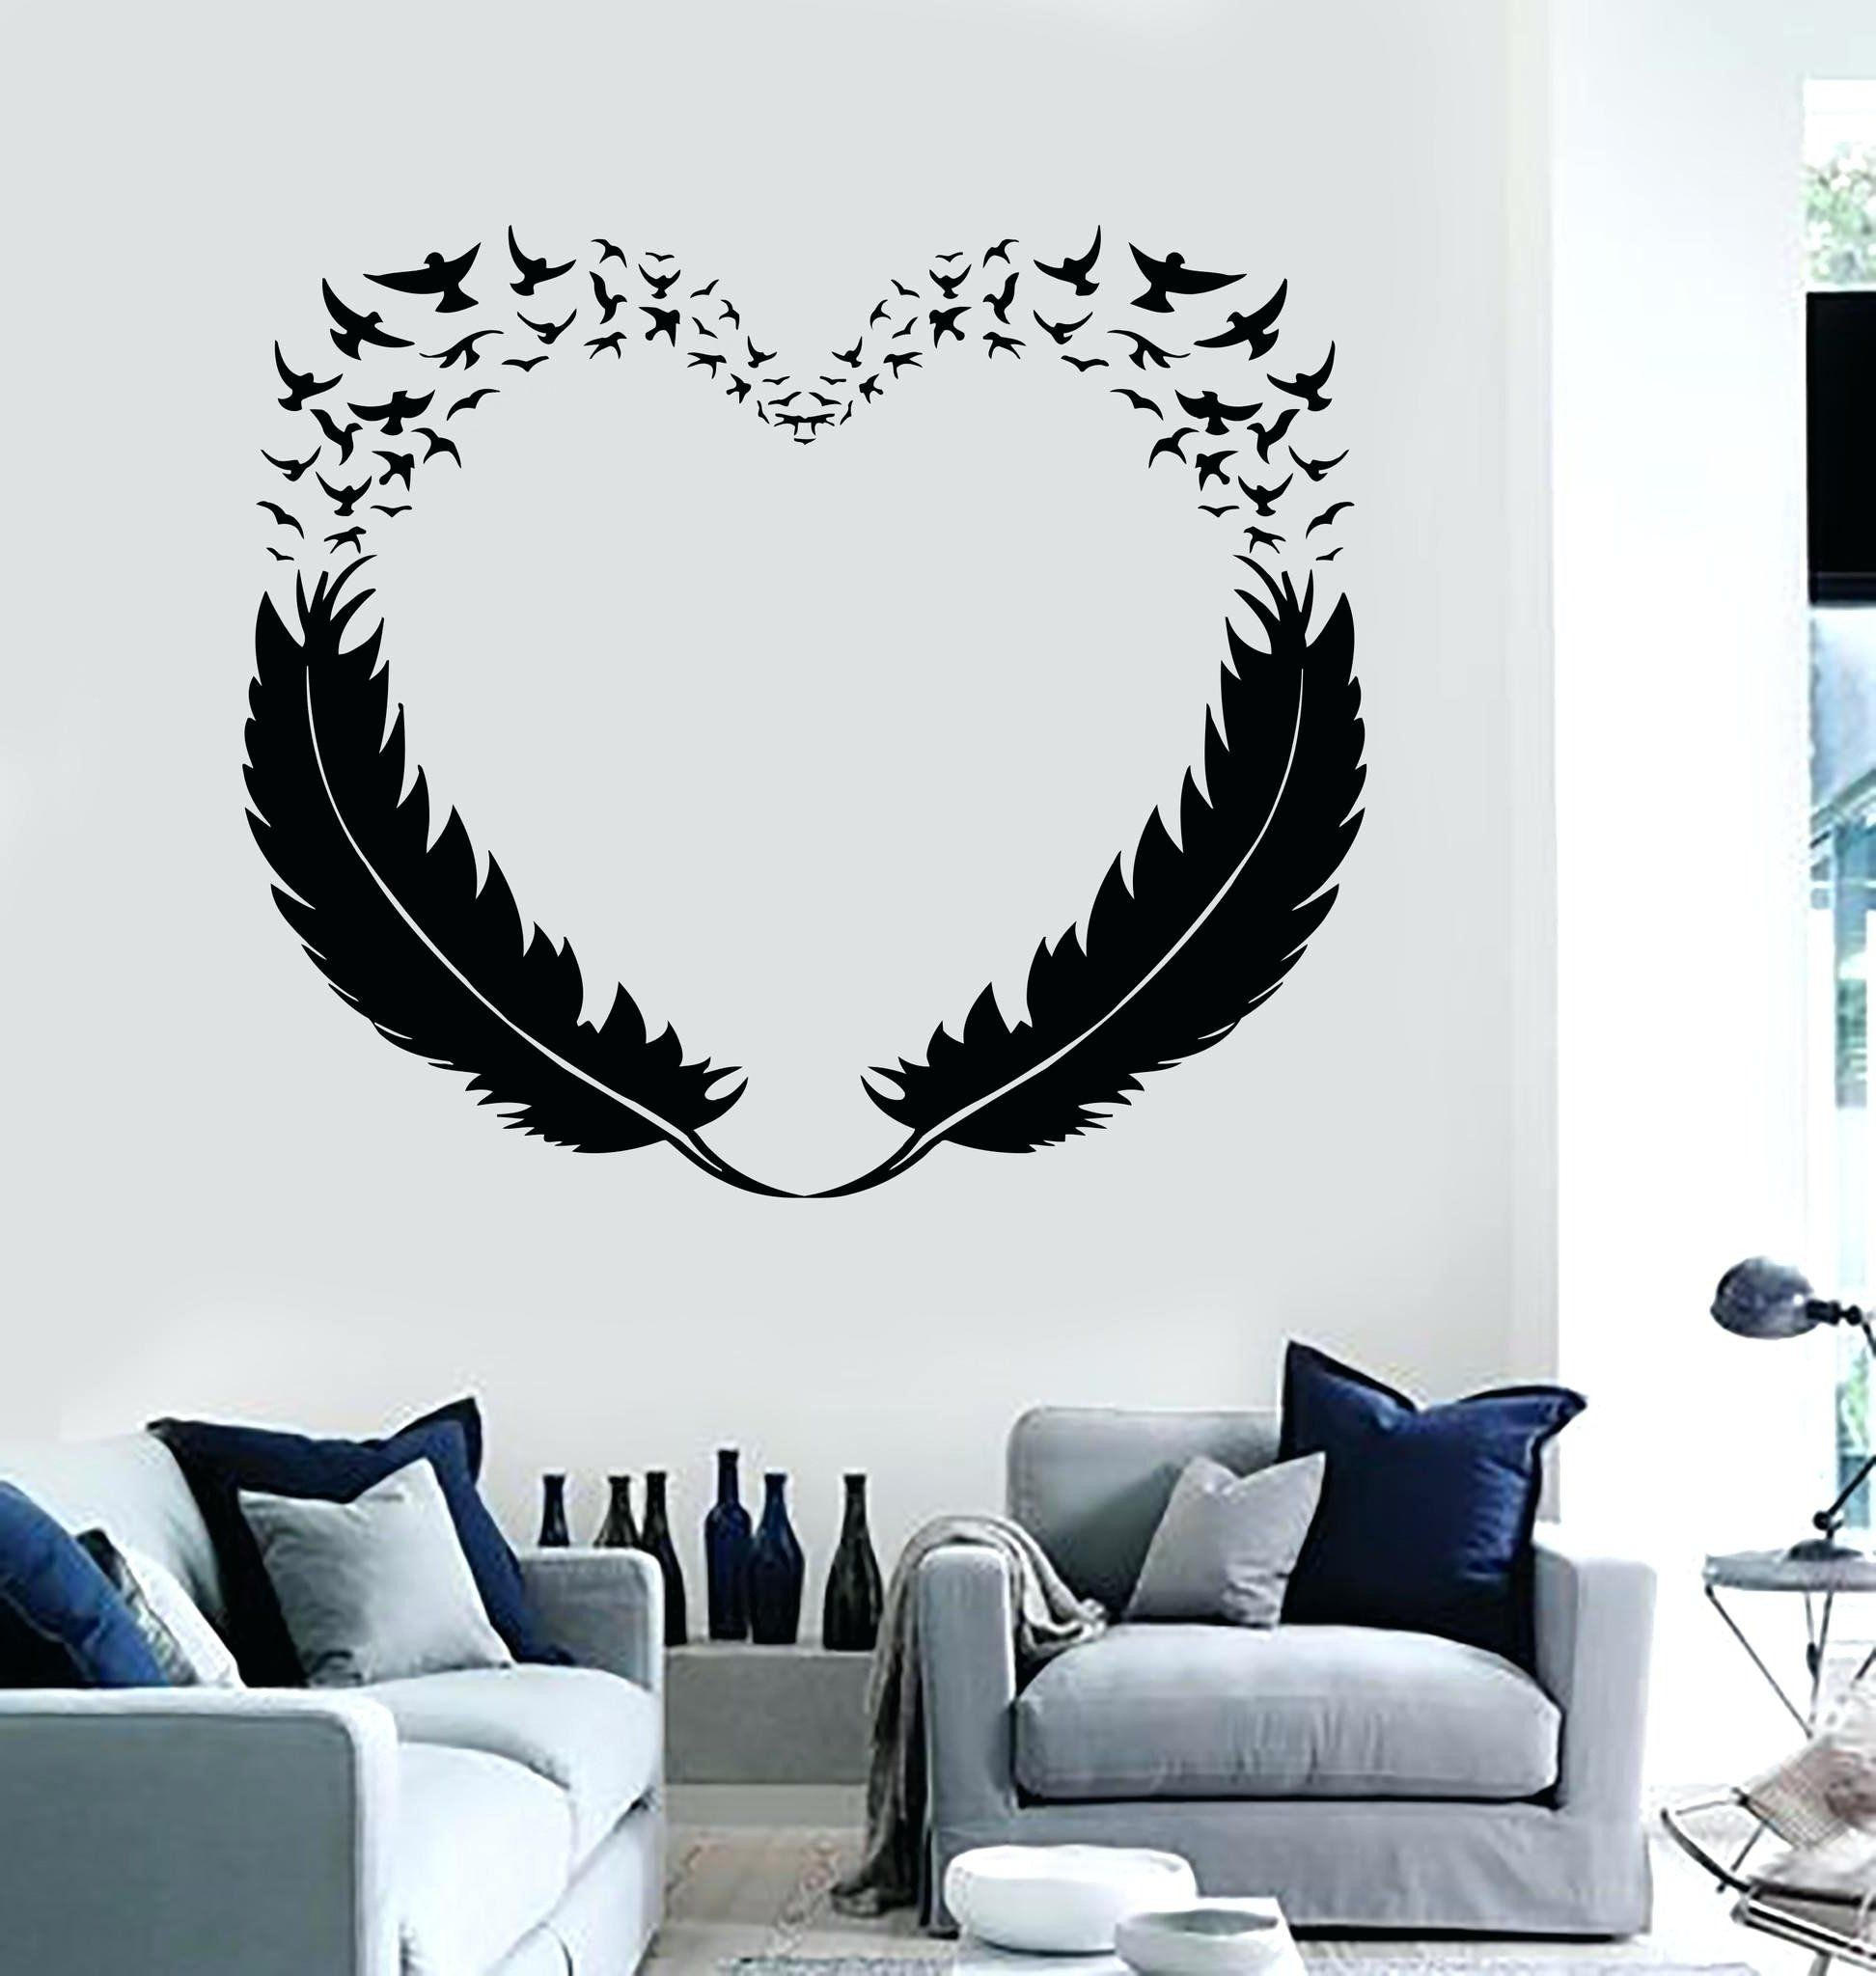 Cool Wall Decor For Guys Fresh 15 Ideas Of Cool Wall Art For Guys Wall Decals For Bedroom Cool Wall Decor Home Wall Painting